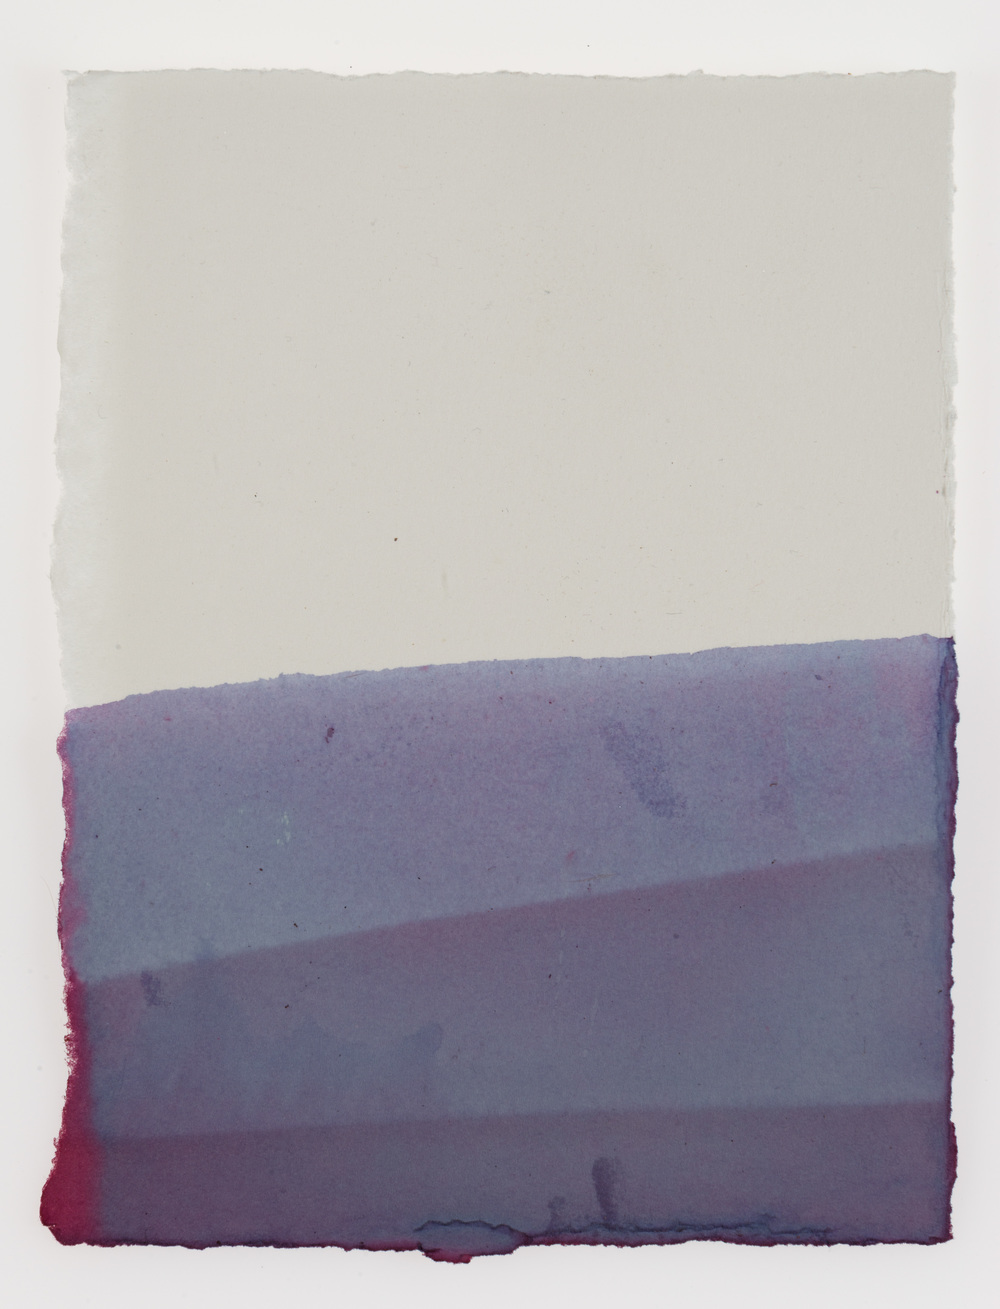 Cornelia white swann, madrugada, 2015. hibiscus on paper, 7 1/2 x 5 3/4 inches. documented february 2015.